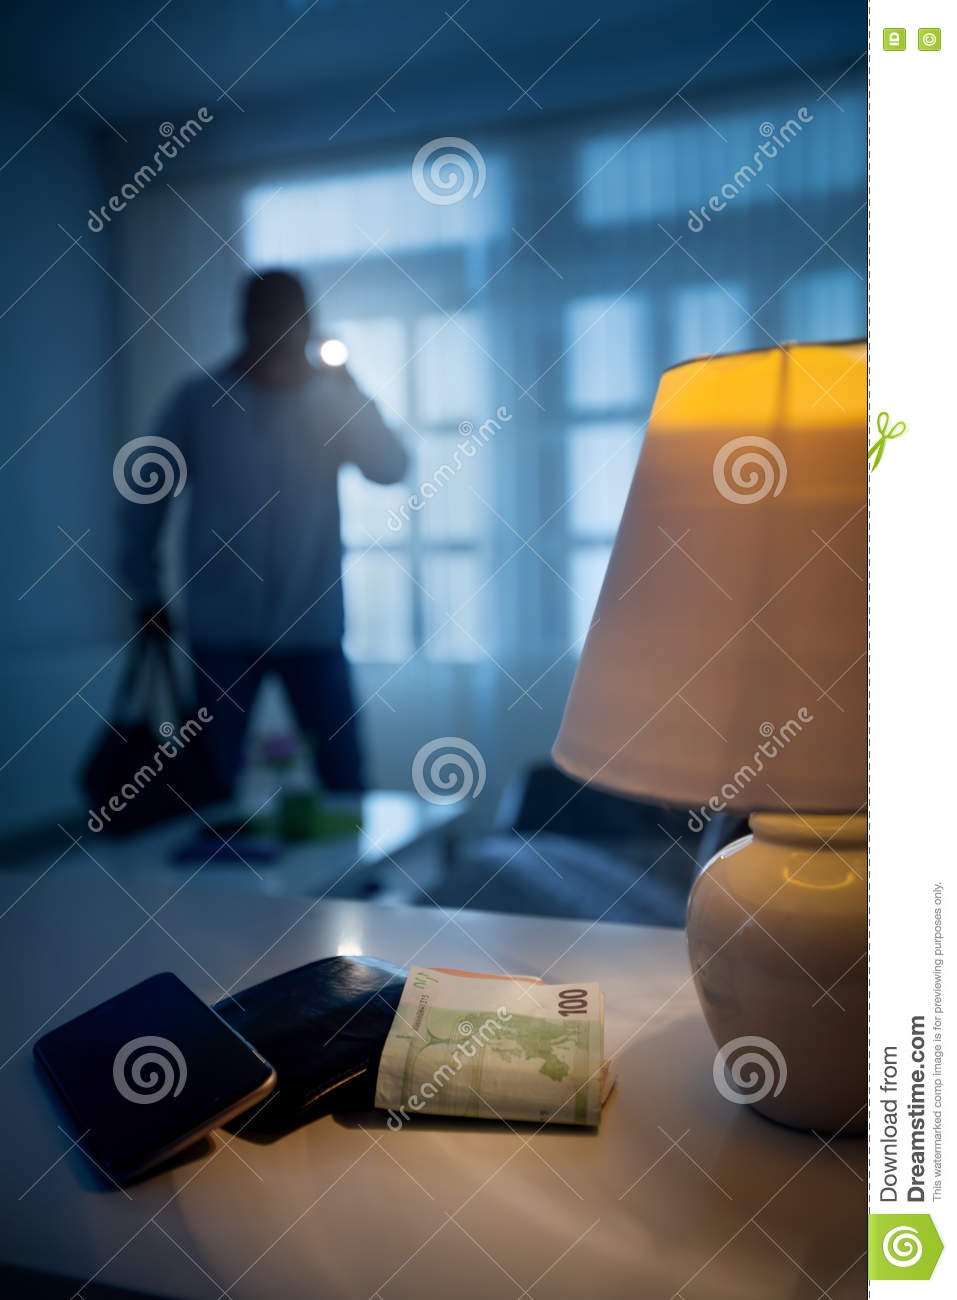 Burglary or thief in a house